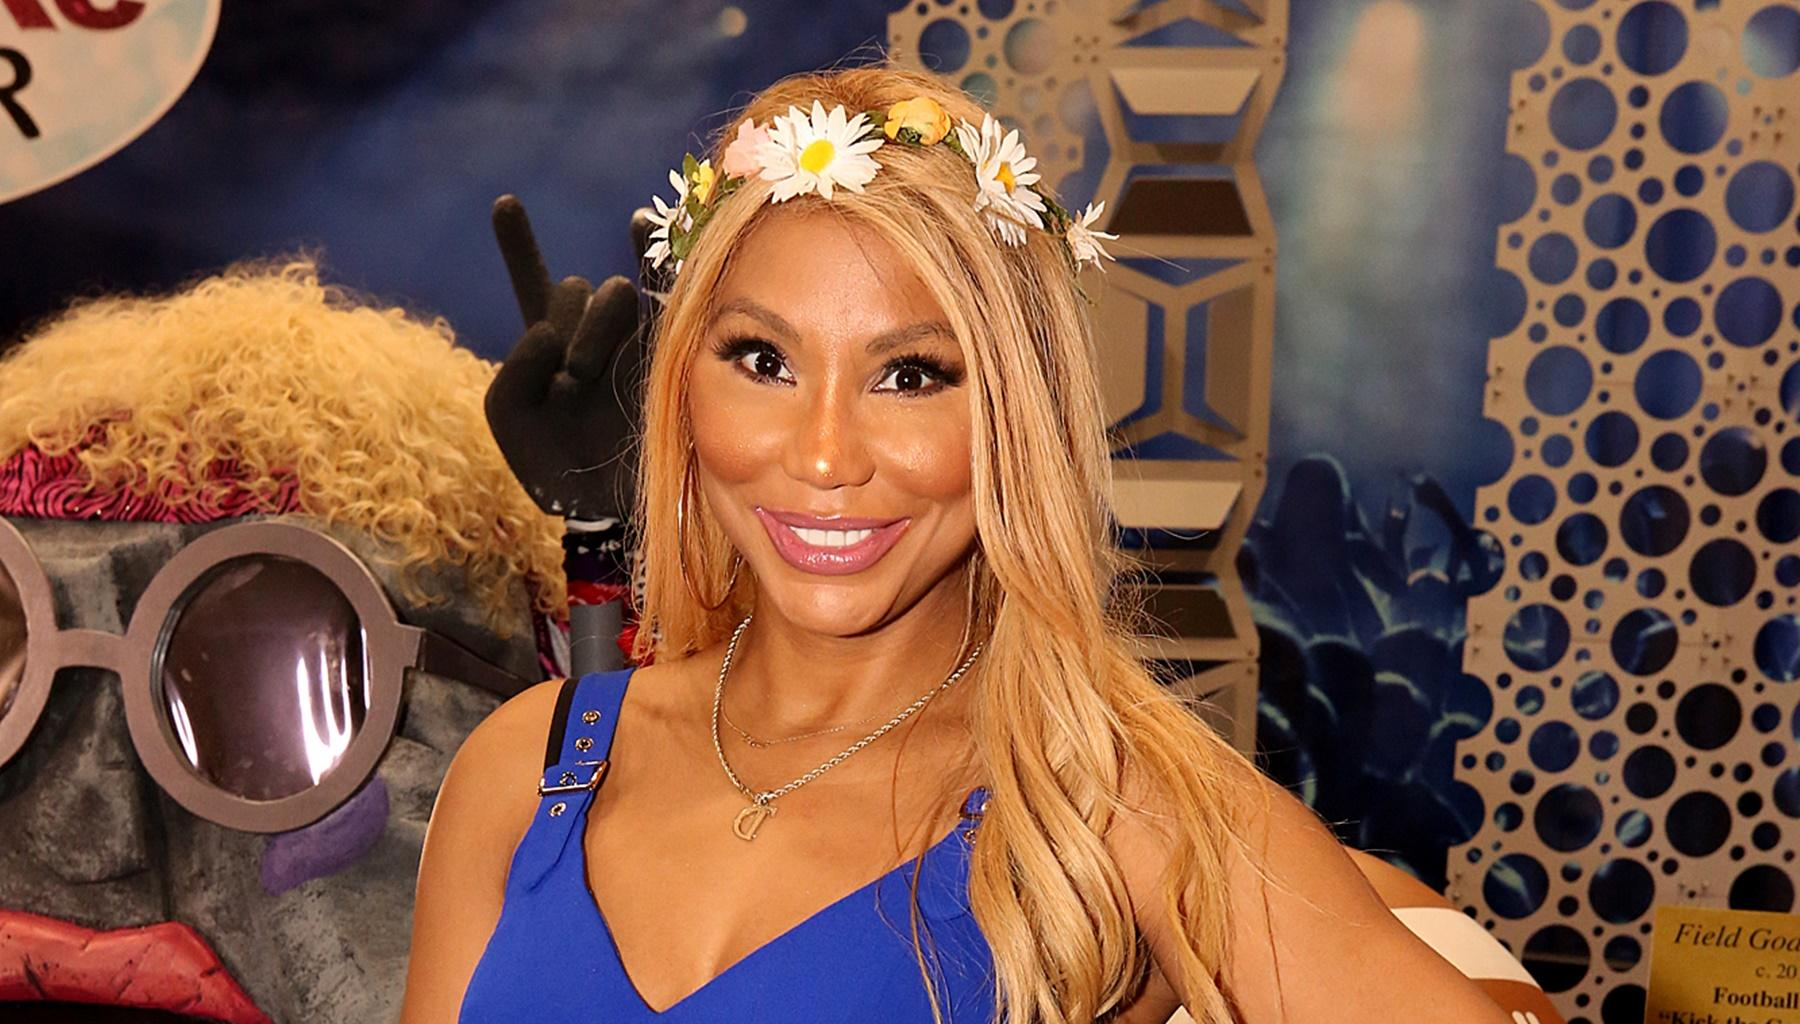 Tamar Braxton's Boyfriend, David Adefeso, Shares Never-Before-Seen Picture Of His GF Without Makeup In His Kitchen Washing His Dishes And Explains The Beauty Behind Her Act Of Kindness